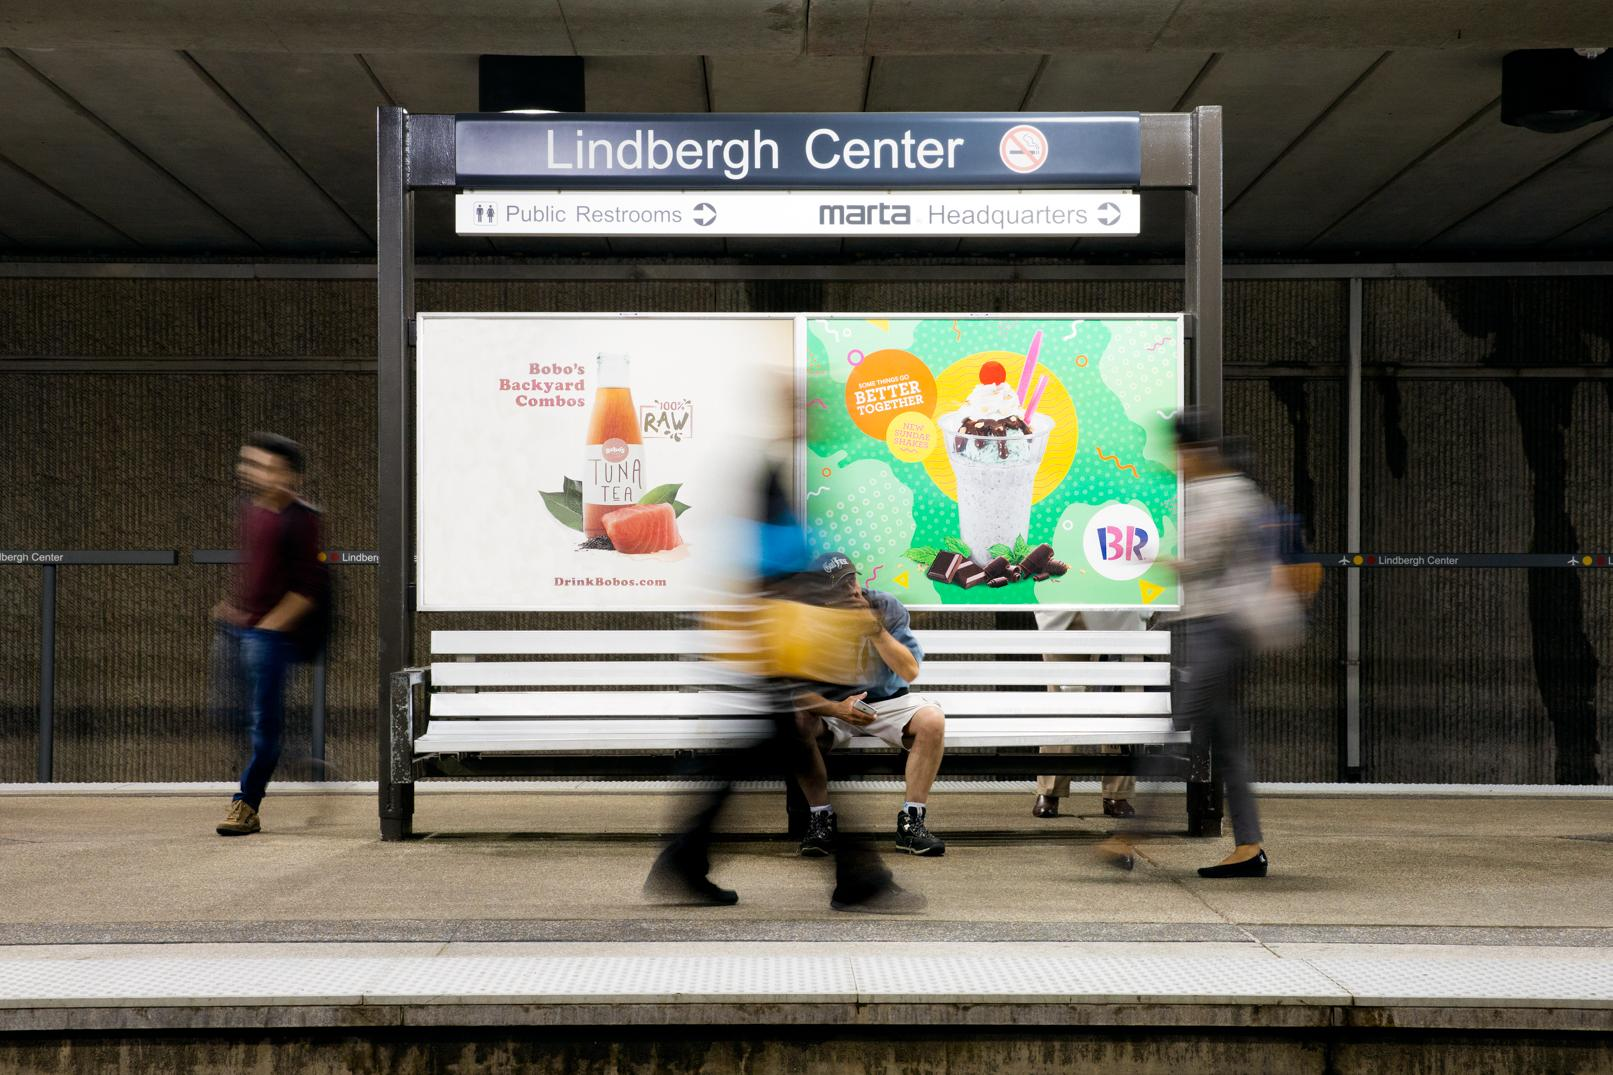 Baskin Robbins Outdoor Ad - Somethings Go Better Together